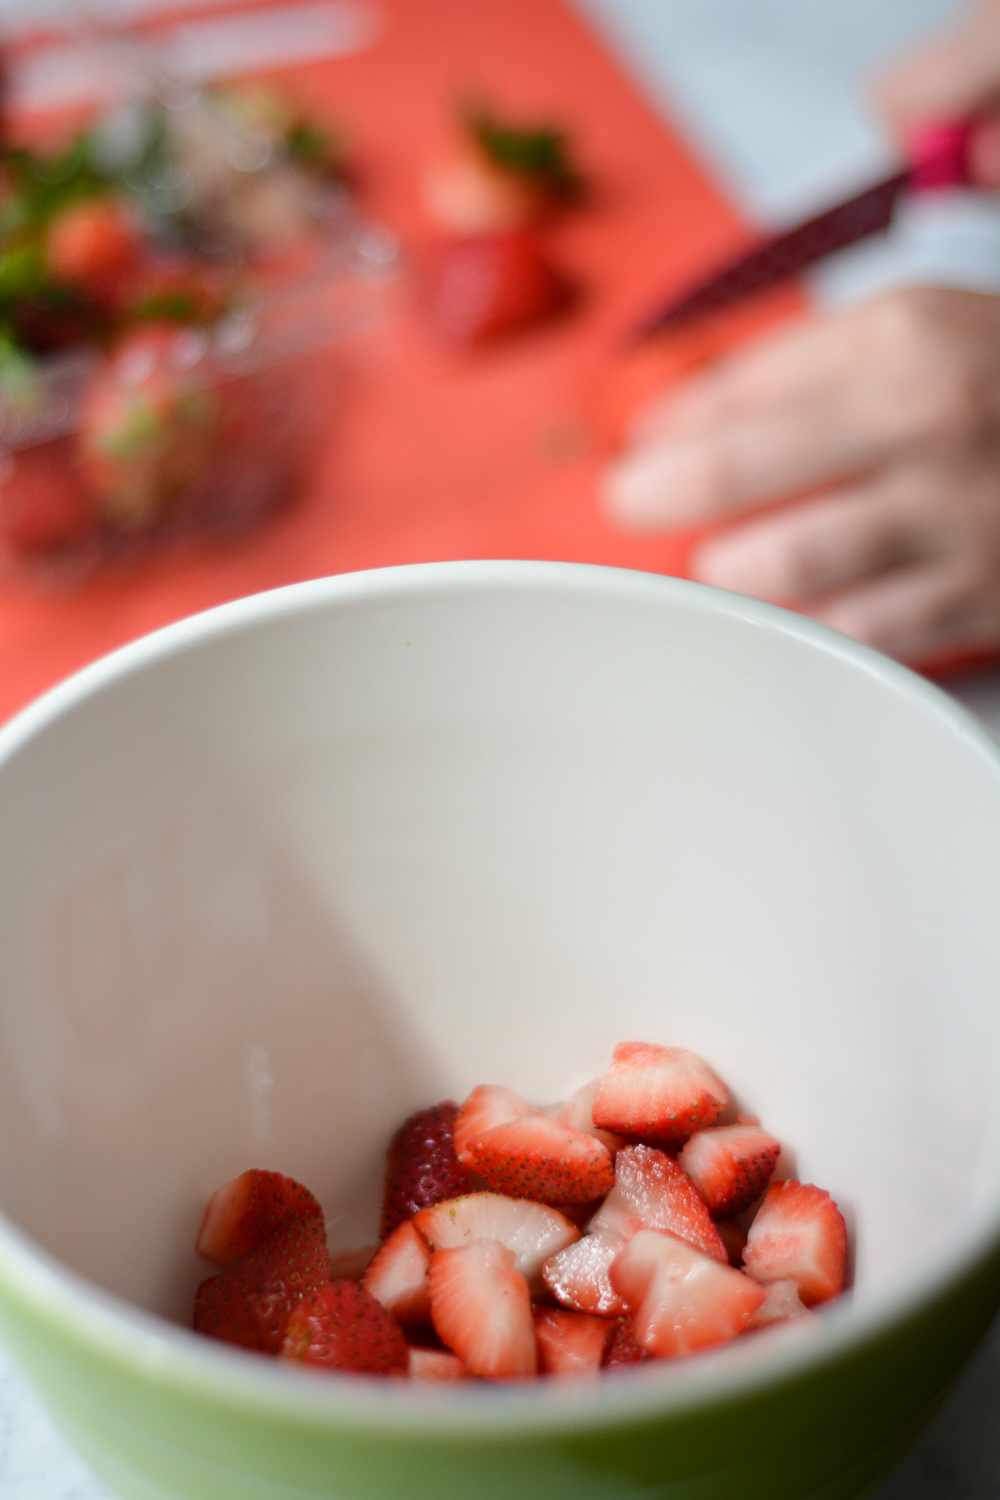 cut the strawberries